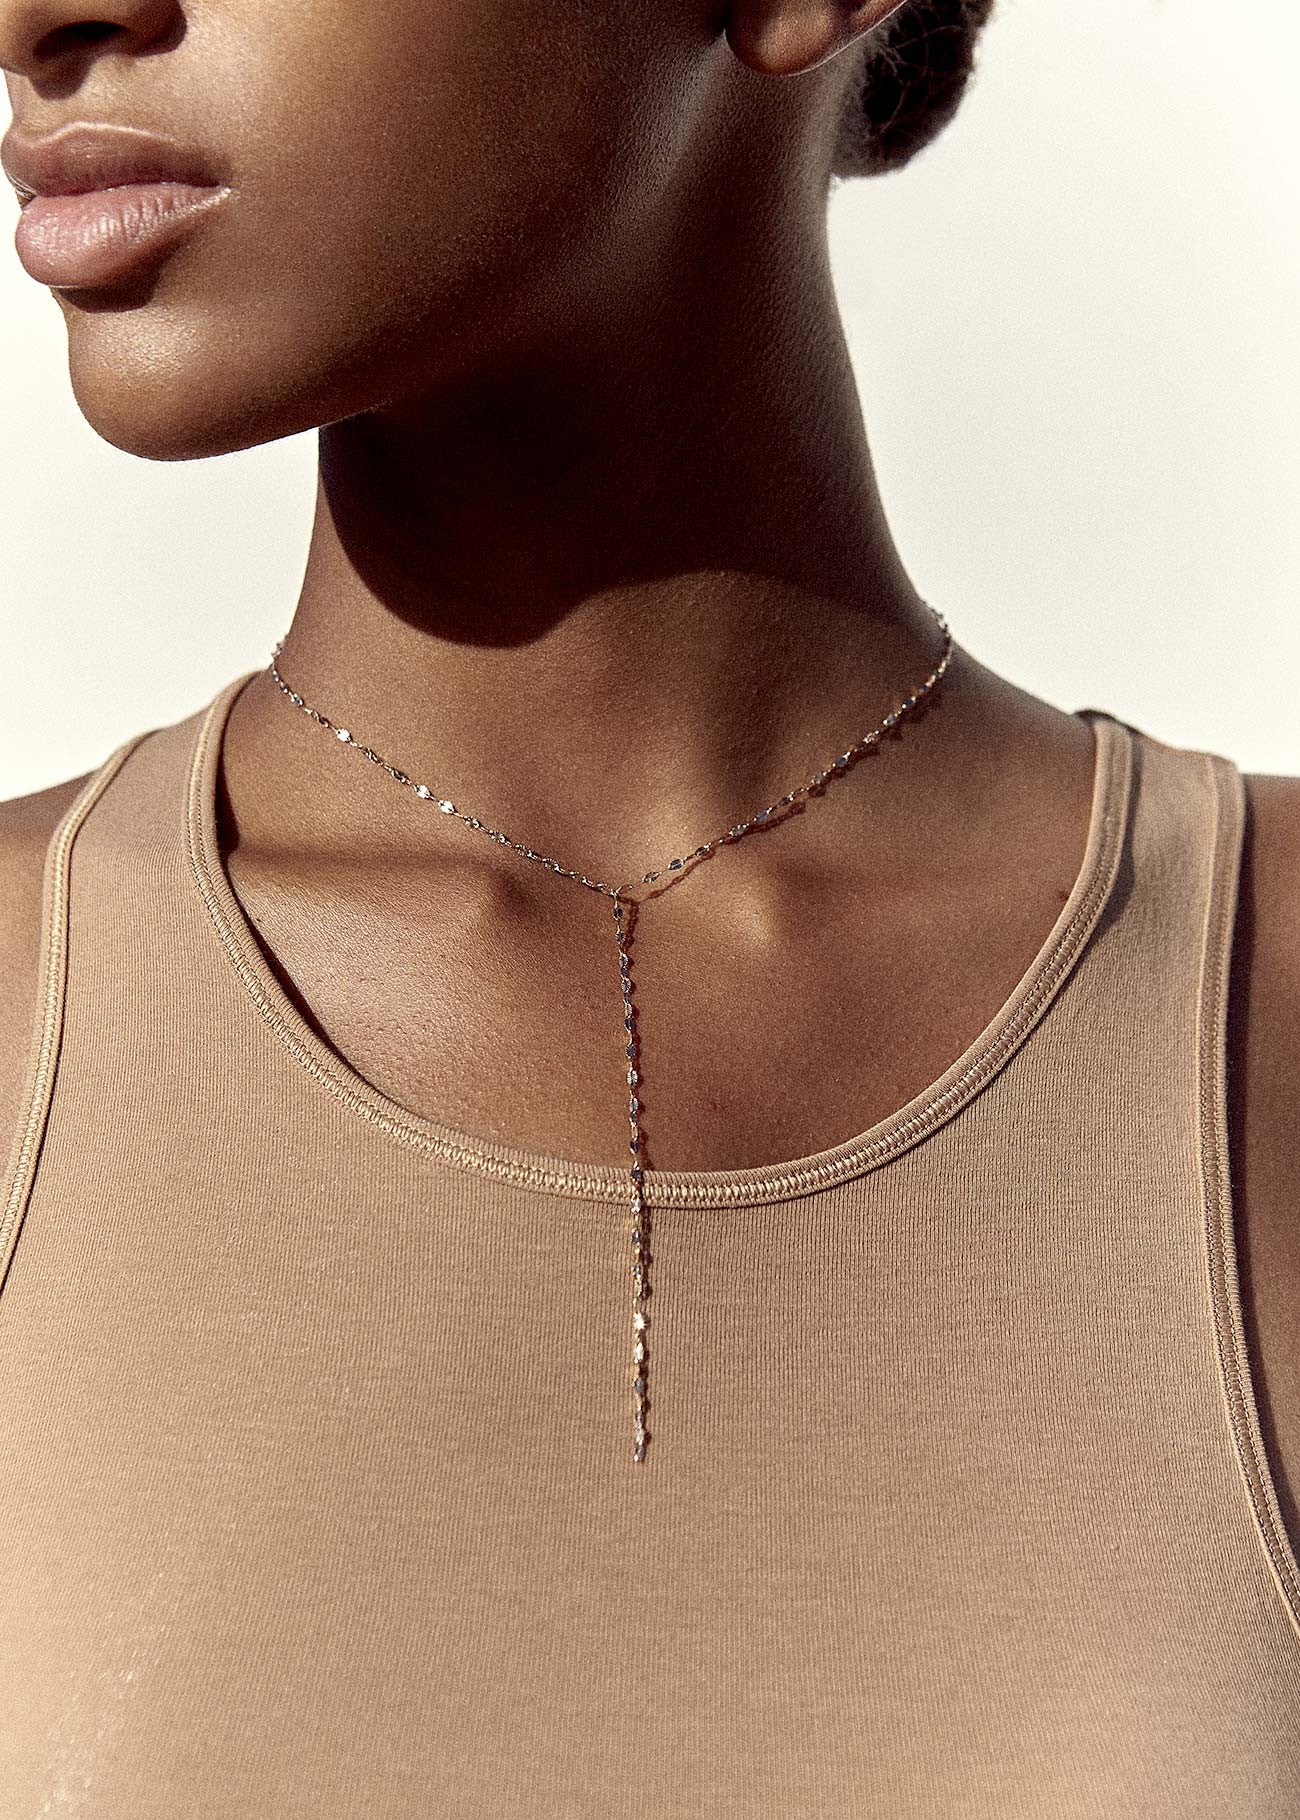 Pascale Monvoisin Necklace COMPORTA N°2